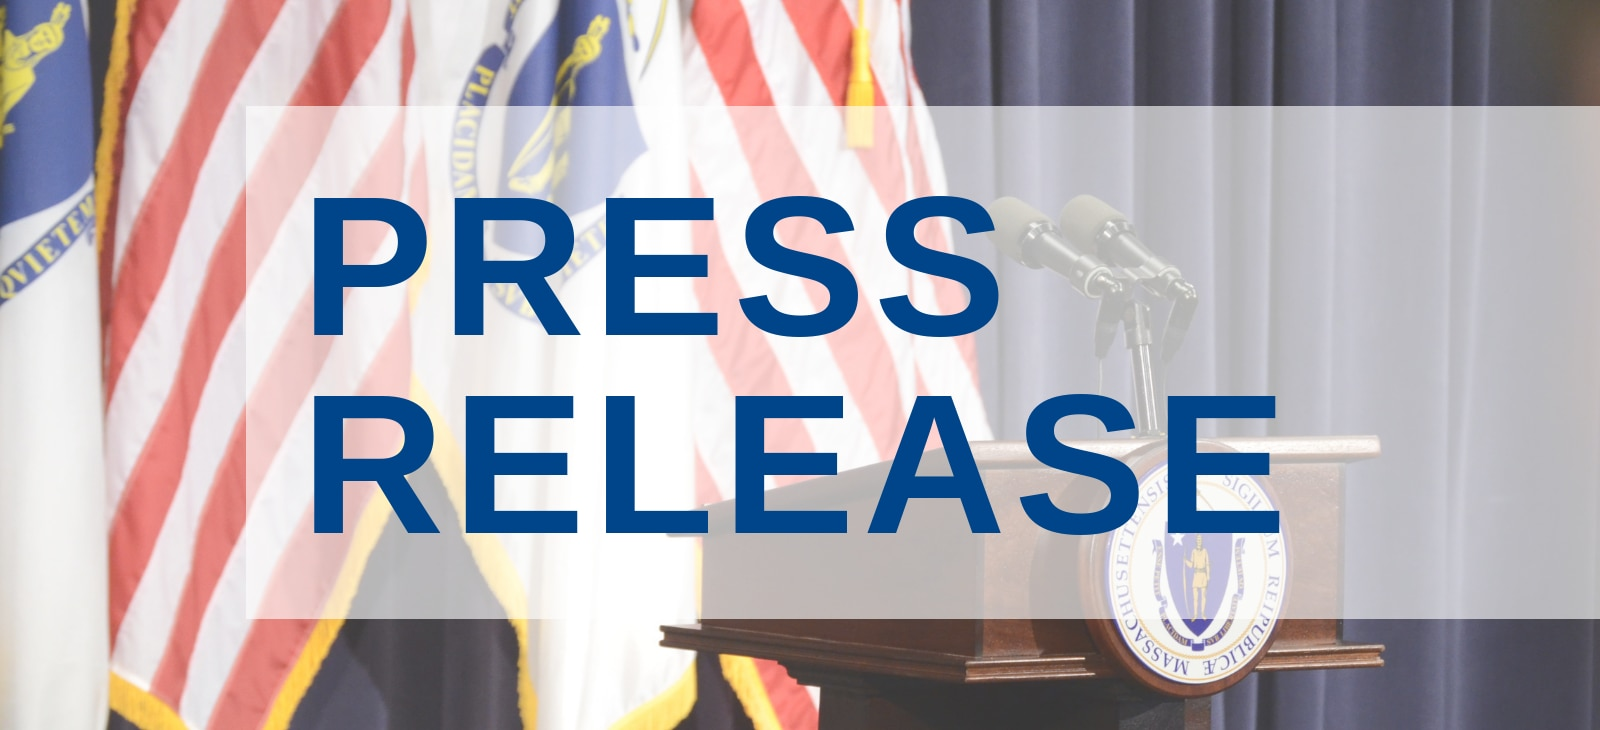 Baker-Polito Administration Issues New Guidance for Executive Branch Employees